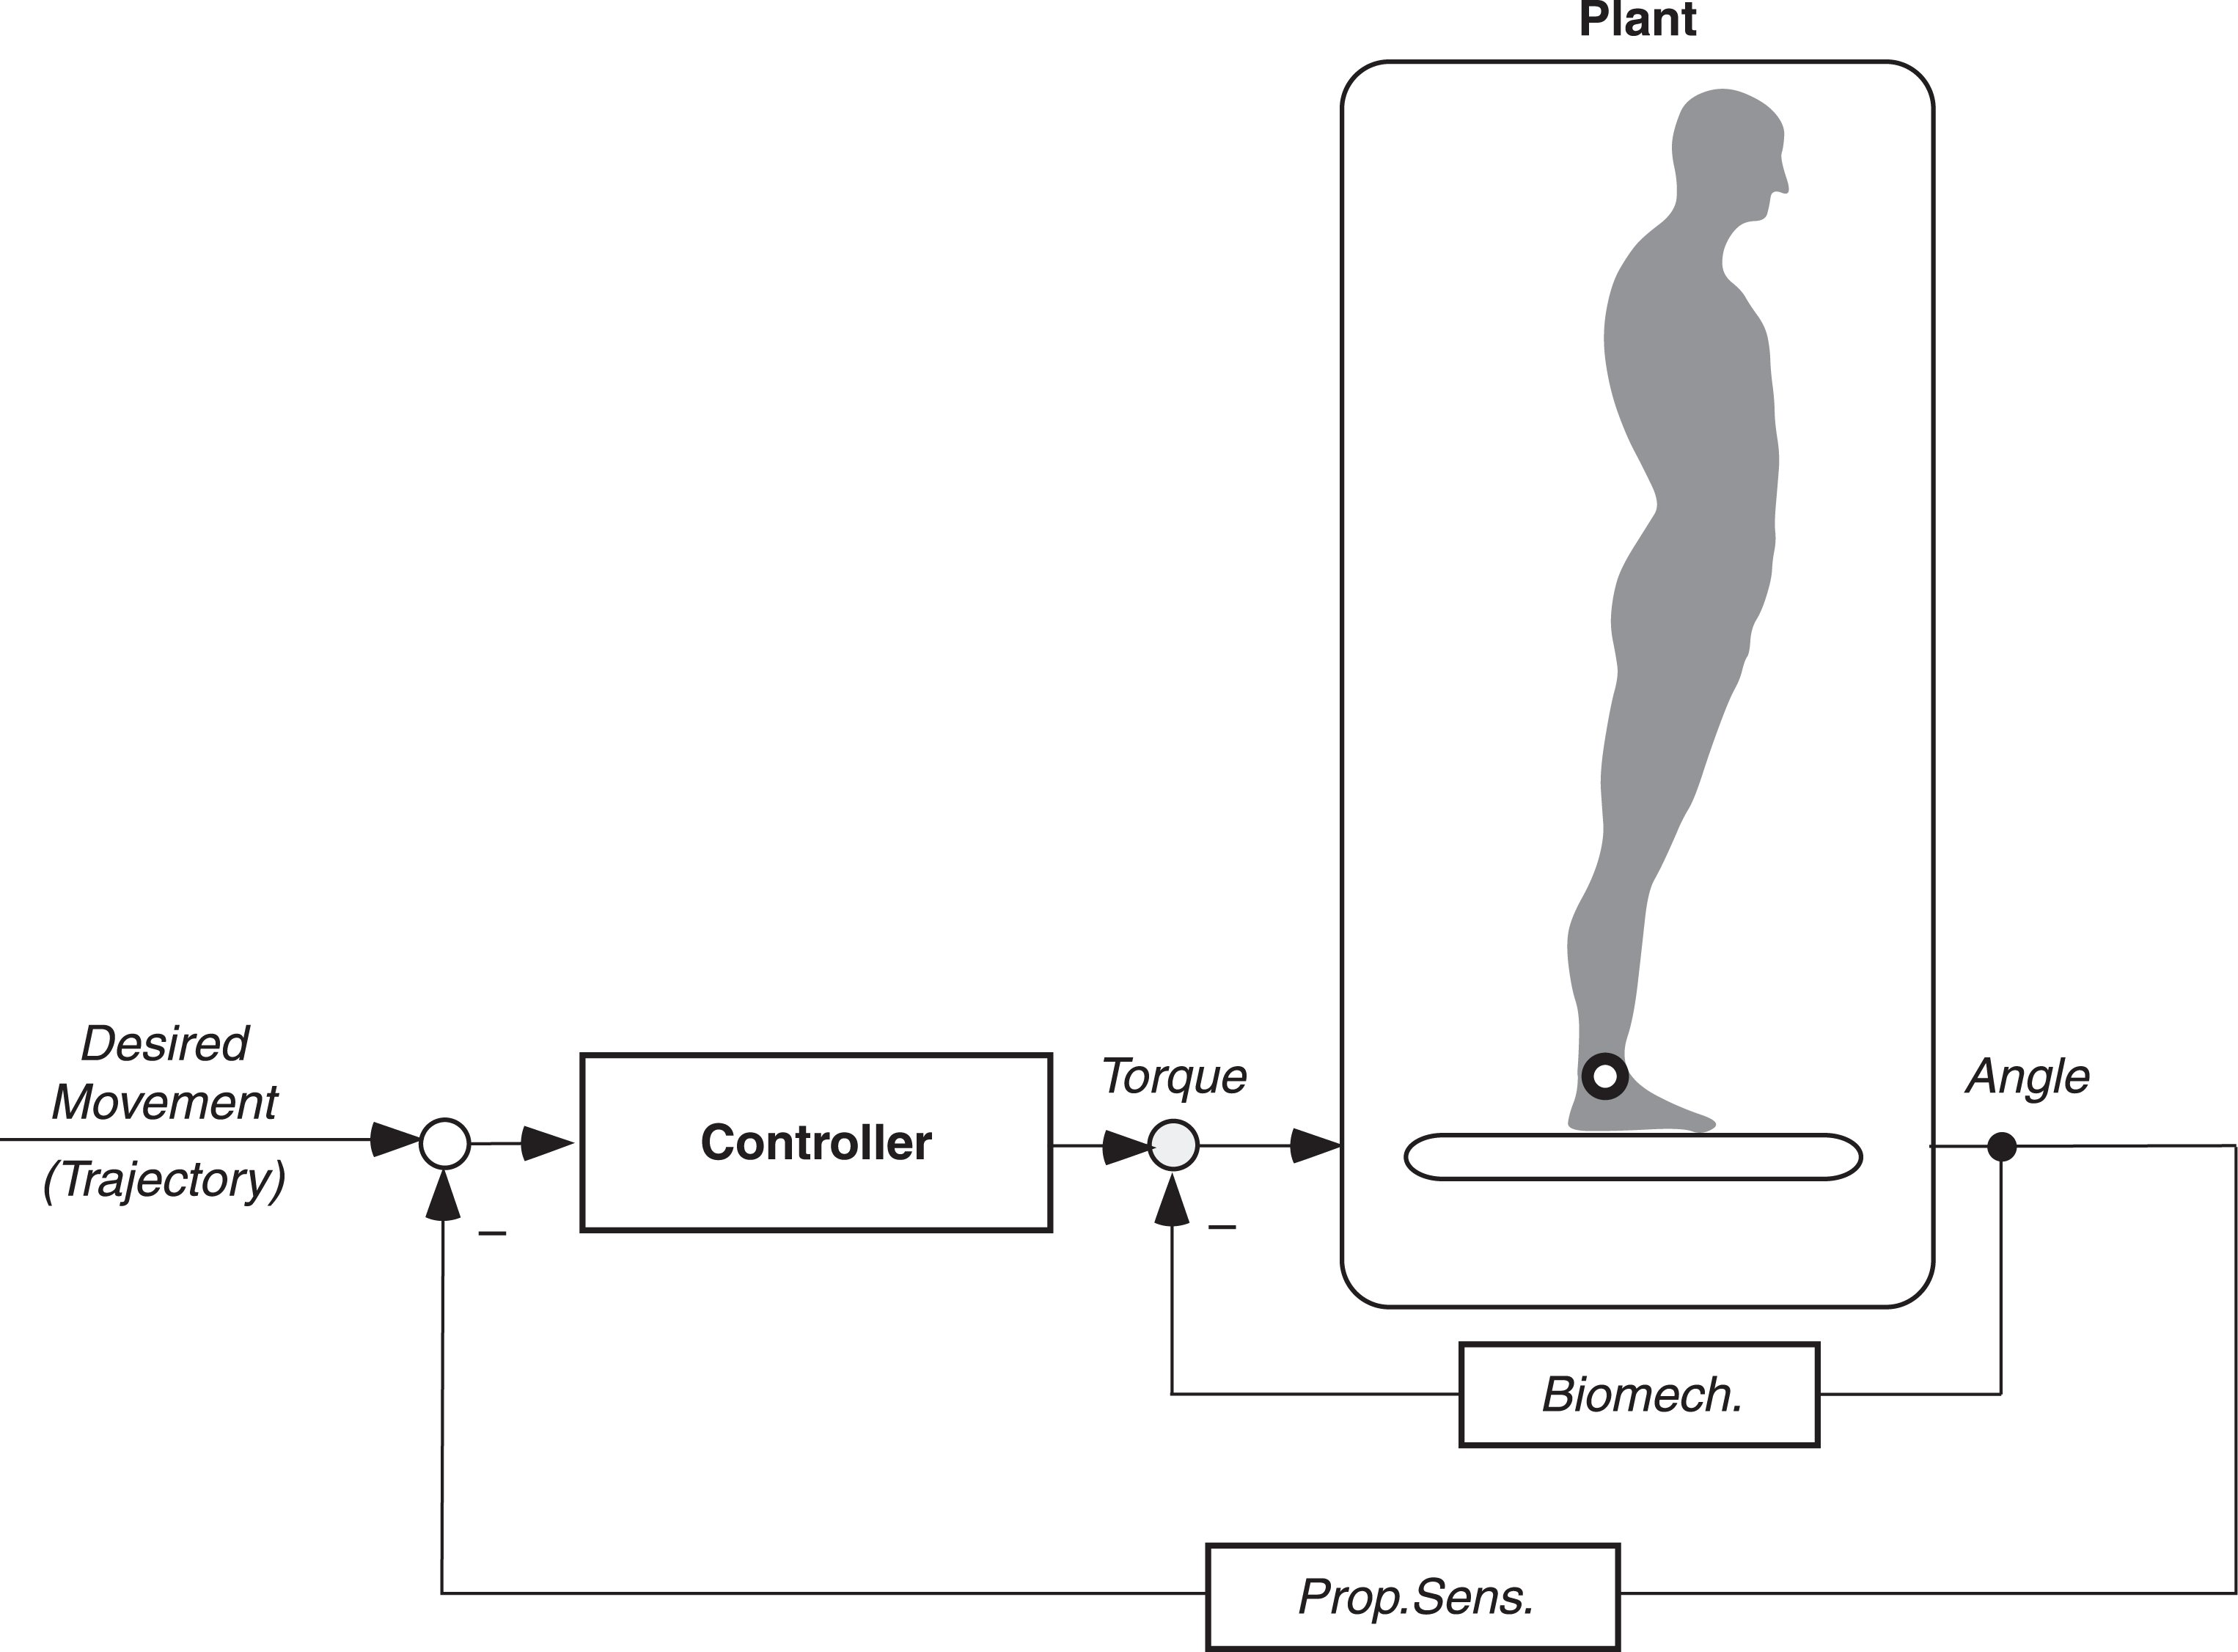 Servo control model. The desired movement is driven by error-sensing 'reflexive' negative feedback. Biomech., instrinsic (passive) muscle stiffness and damping. Prop.Sens., proprioceptive sensor of joint angle (here of ankle joint). Given feedback and controller parameters are adjusted to plant dynamics, the loop compensates for body inertia when performing the desired movement trajectory.